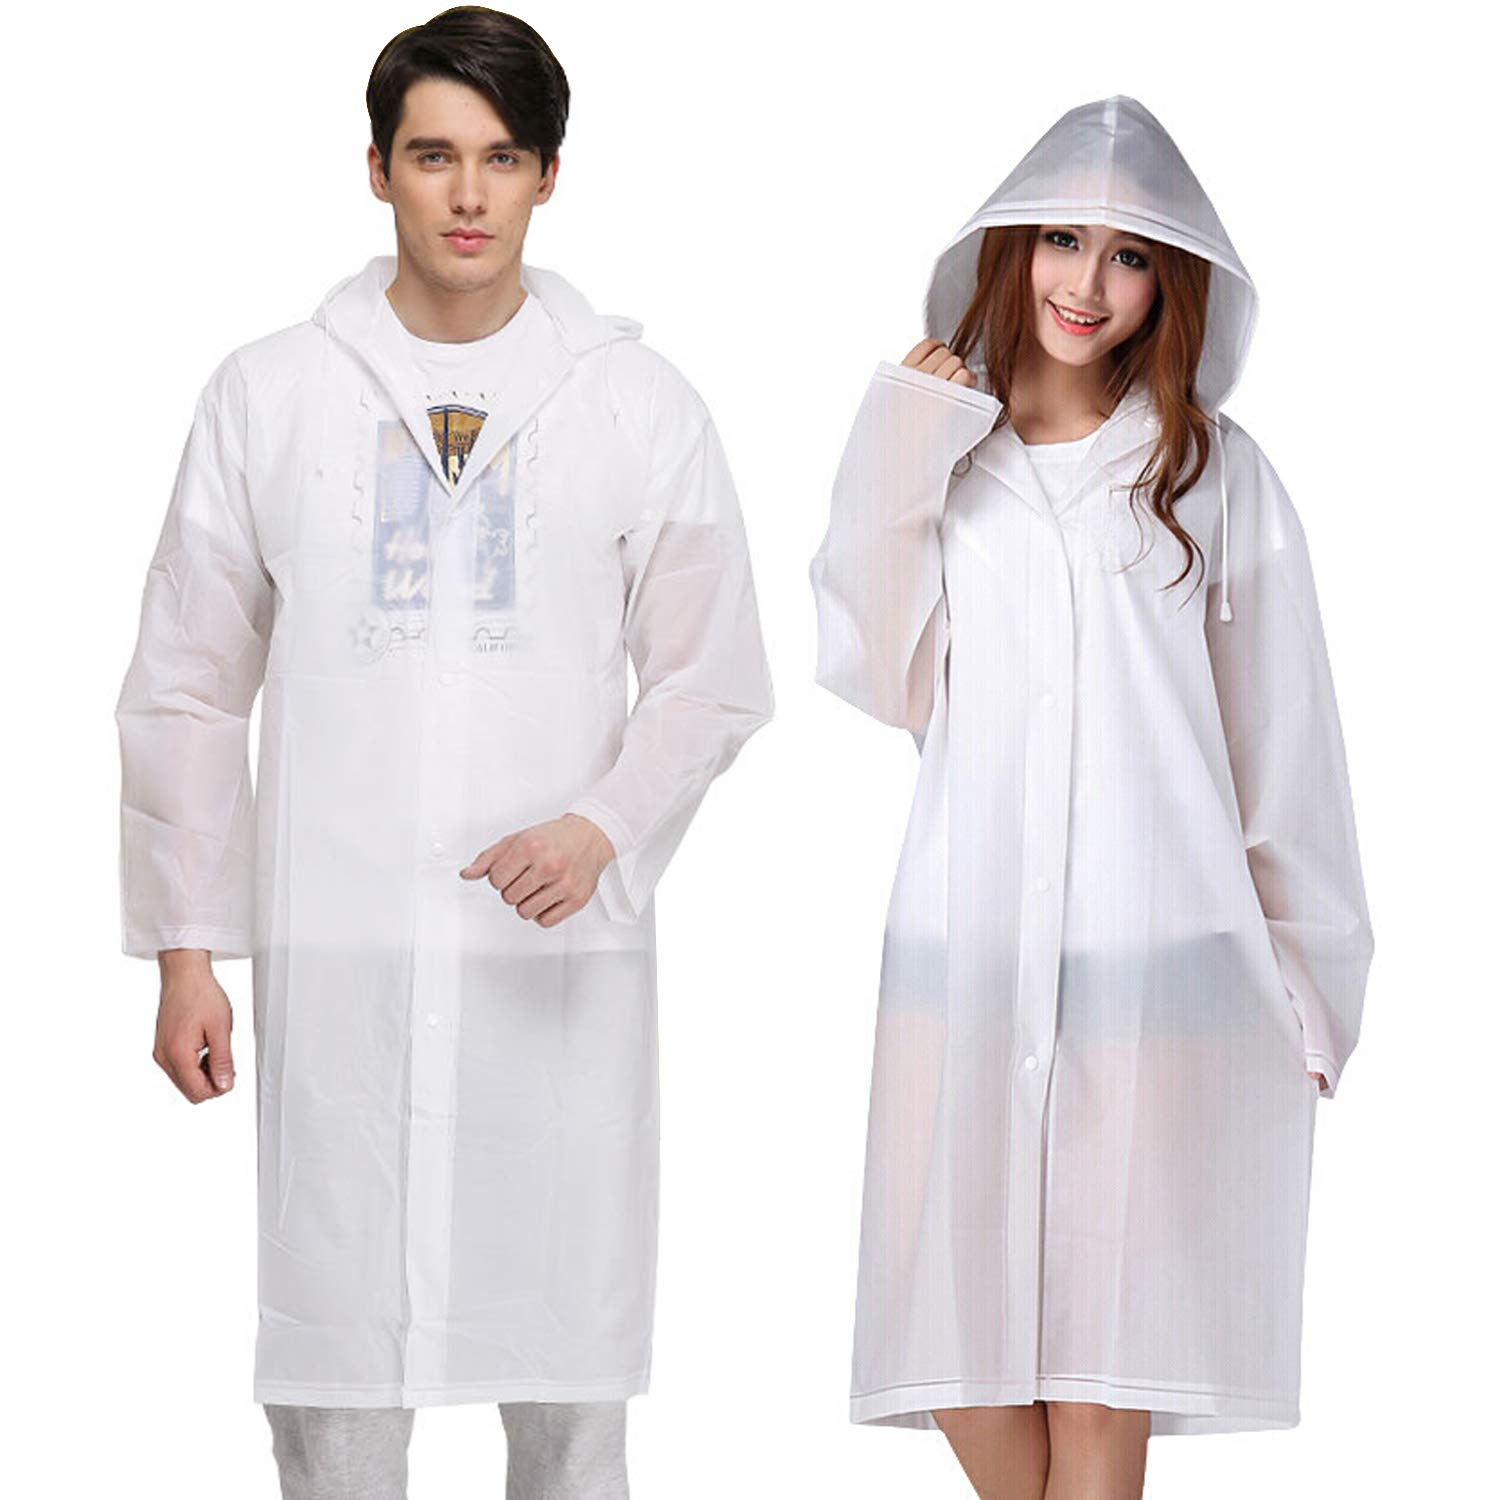 KKTICK Rain Poncho Reusable, 2 Pack Portable Adult Raincoat with Hoods and Sleeves, Thicken Ponchos for Men Women Teens, 45.2'' x 24.8'' by KKTICK